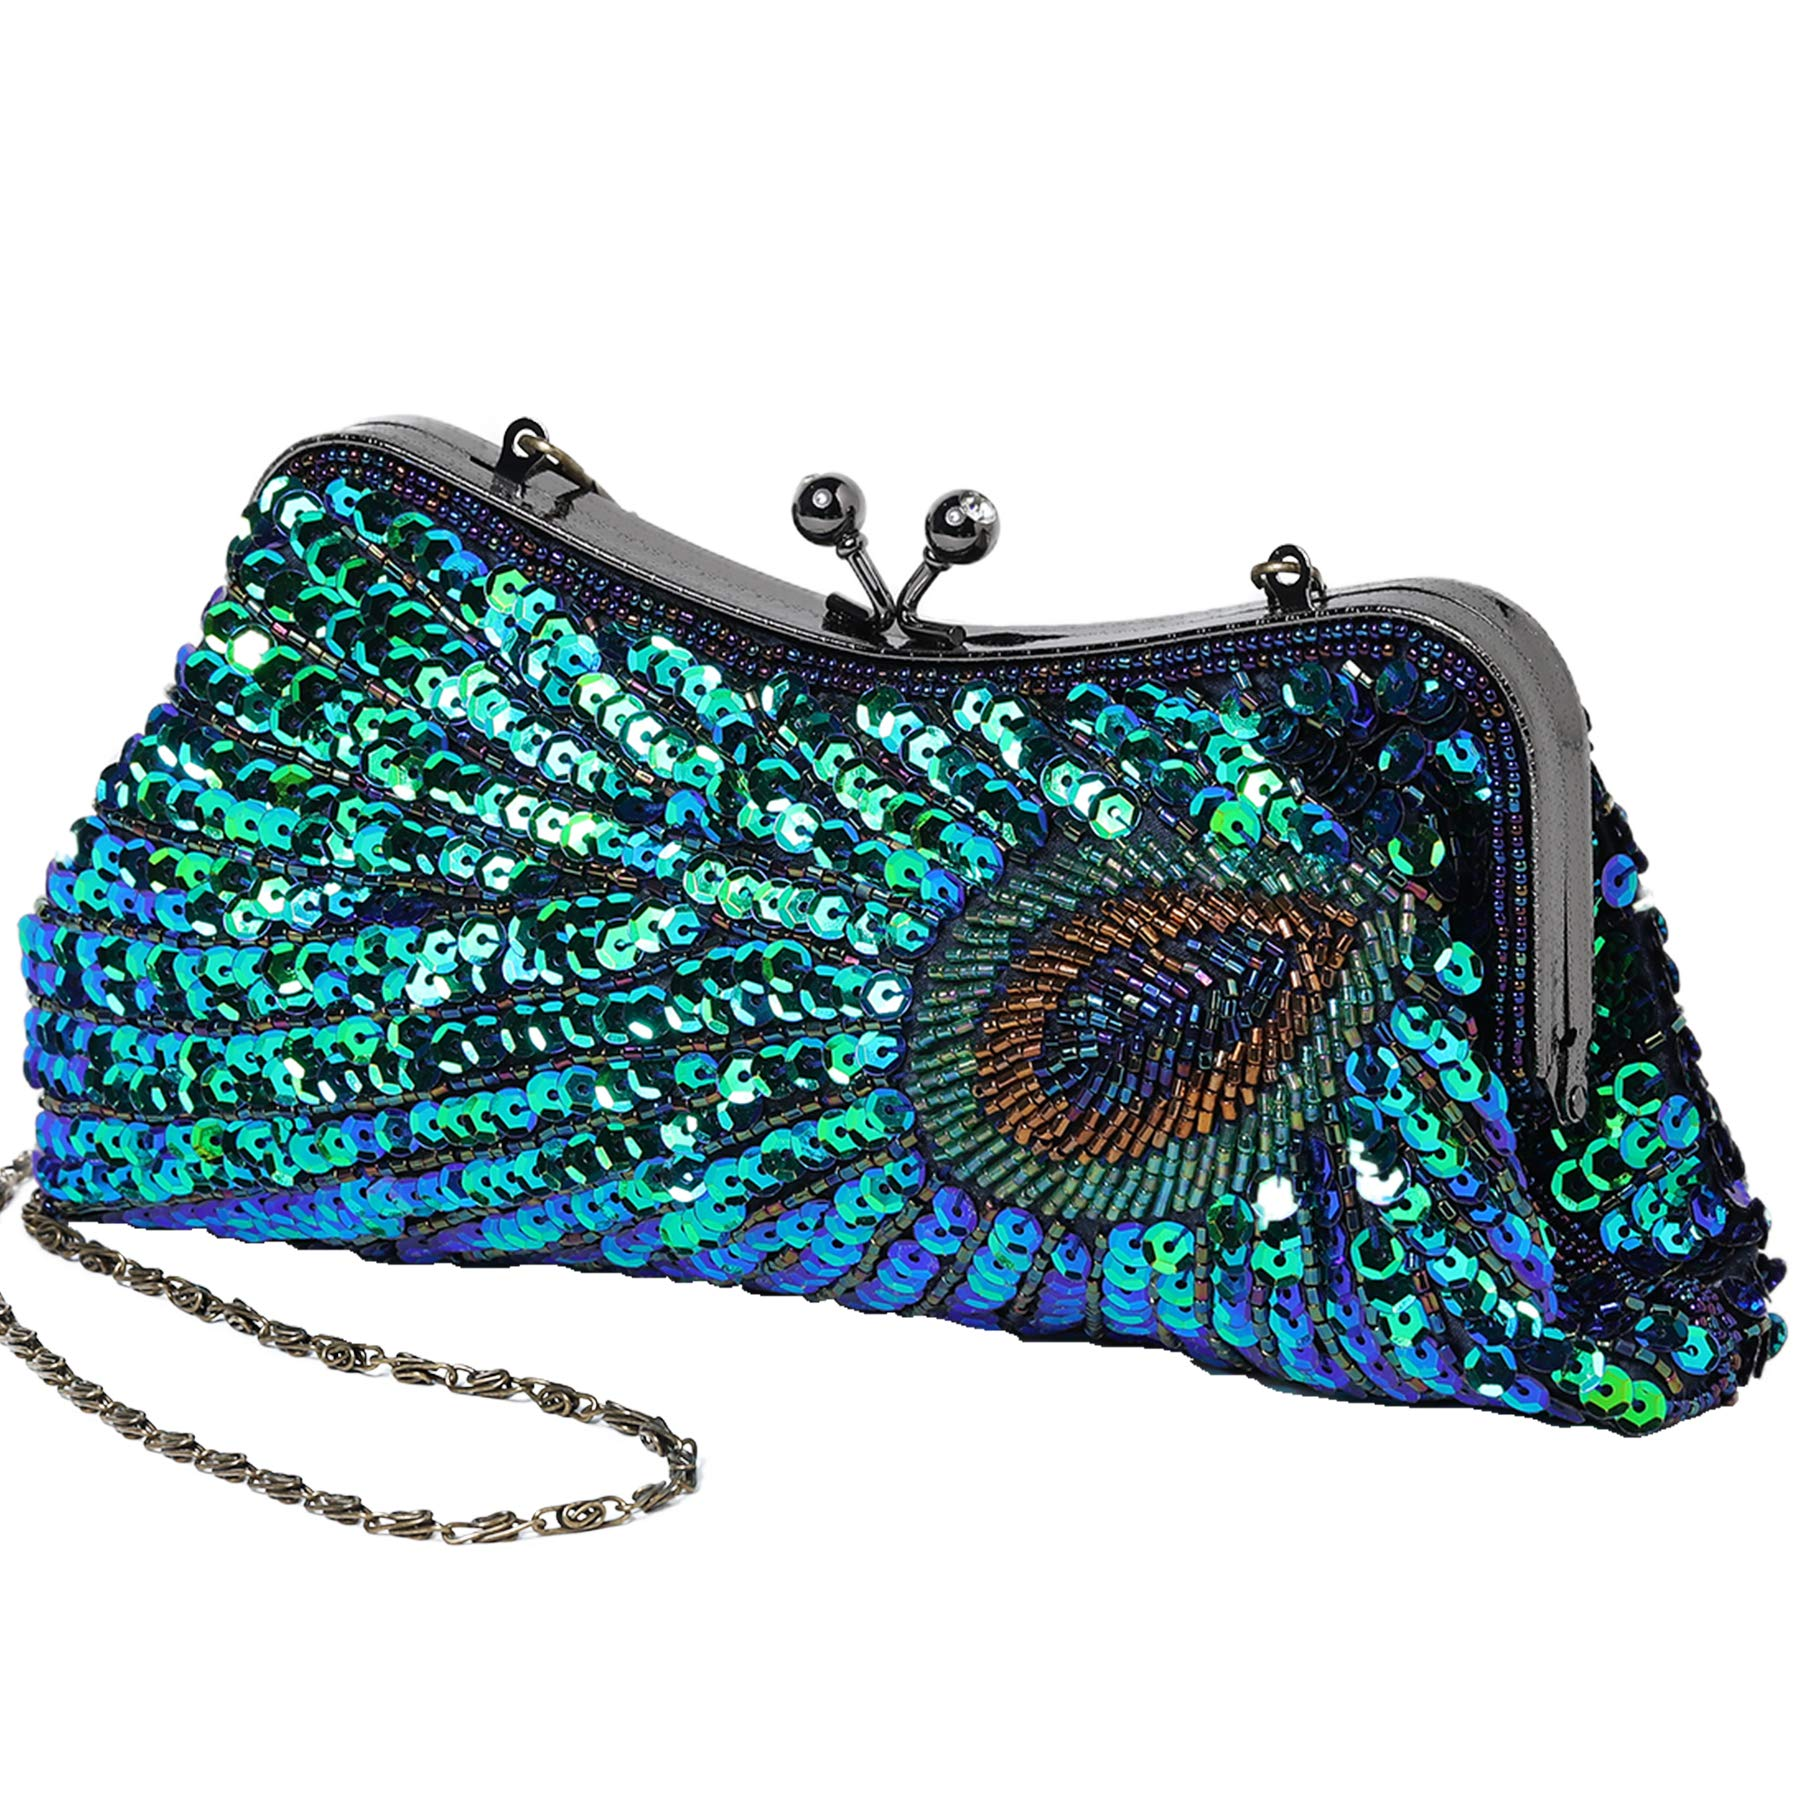 BABEYOND 1920s Flapper Peacock Clutch Gatsby Sequined Handbag Roaring 20s Evening Clutch Beaded Bag 1920s Gatsby Costume Accessories (Style 1)